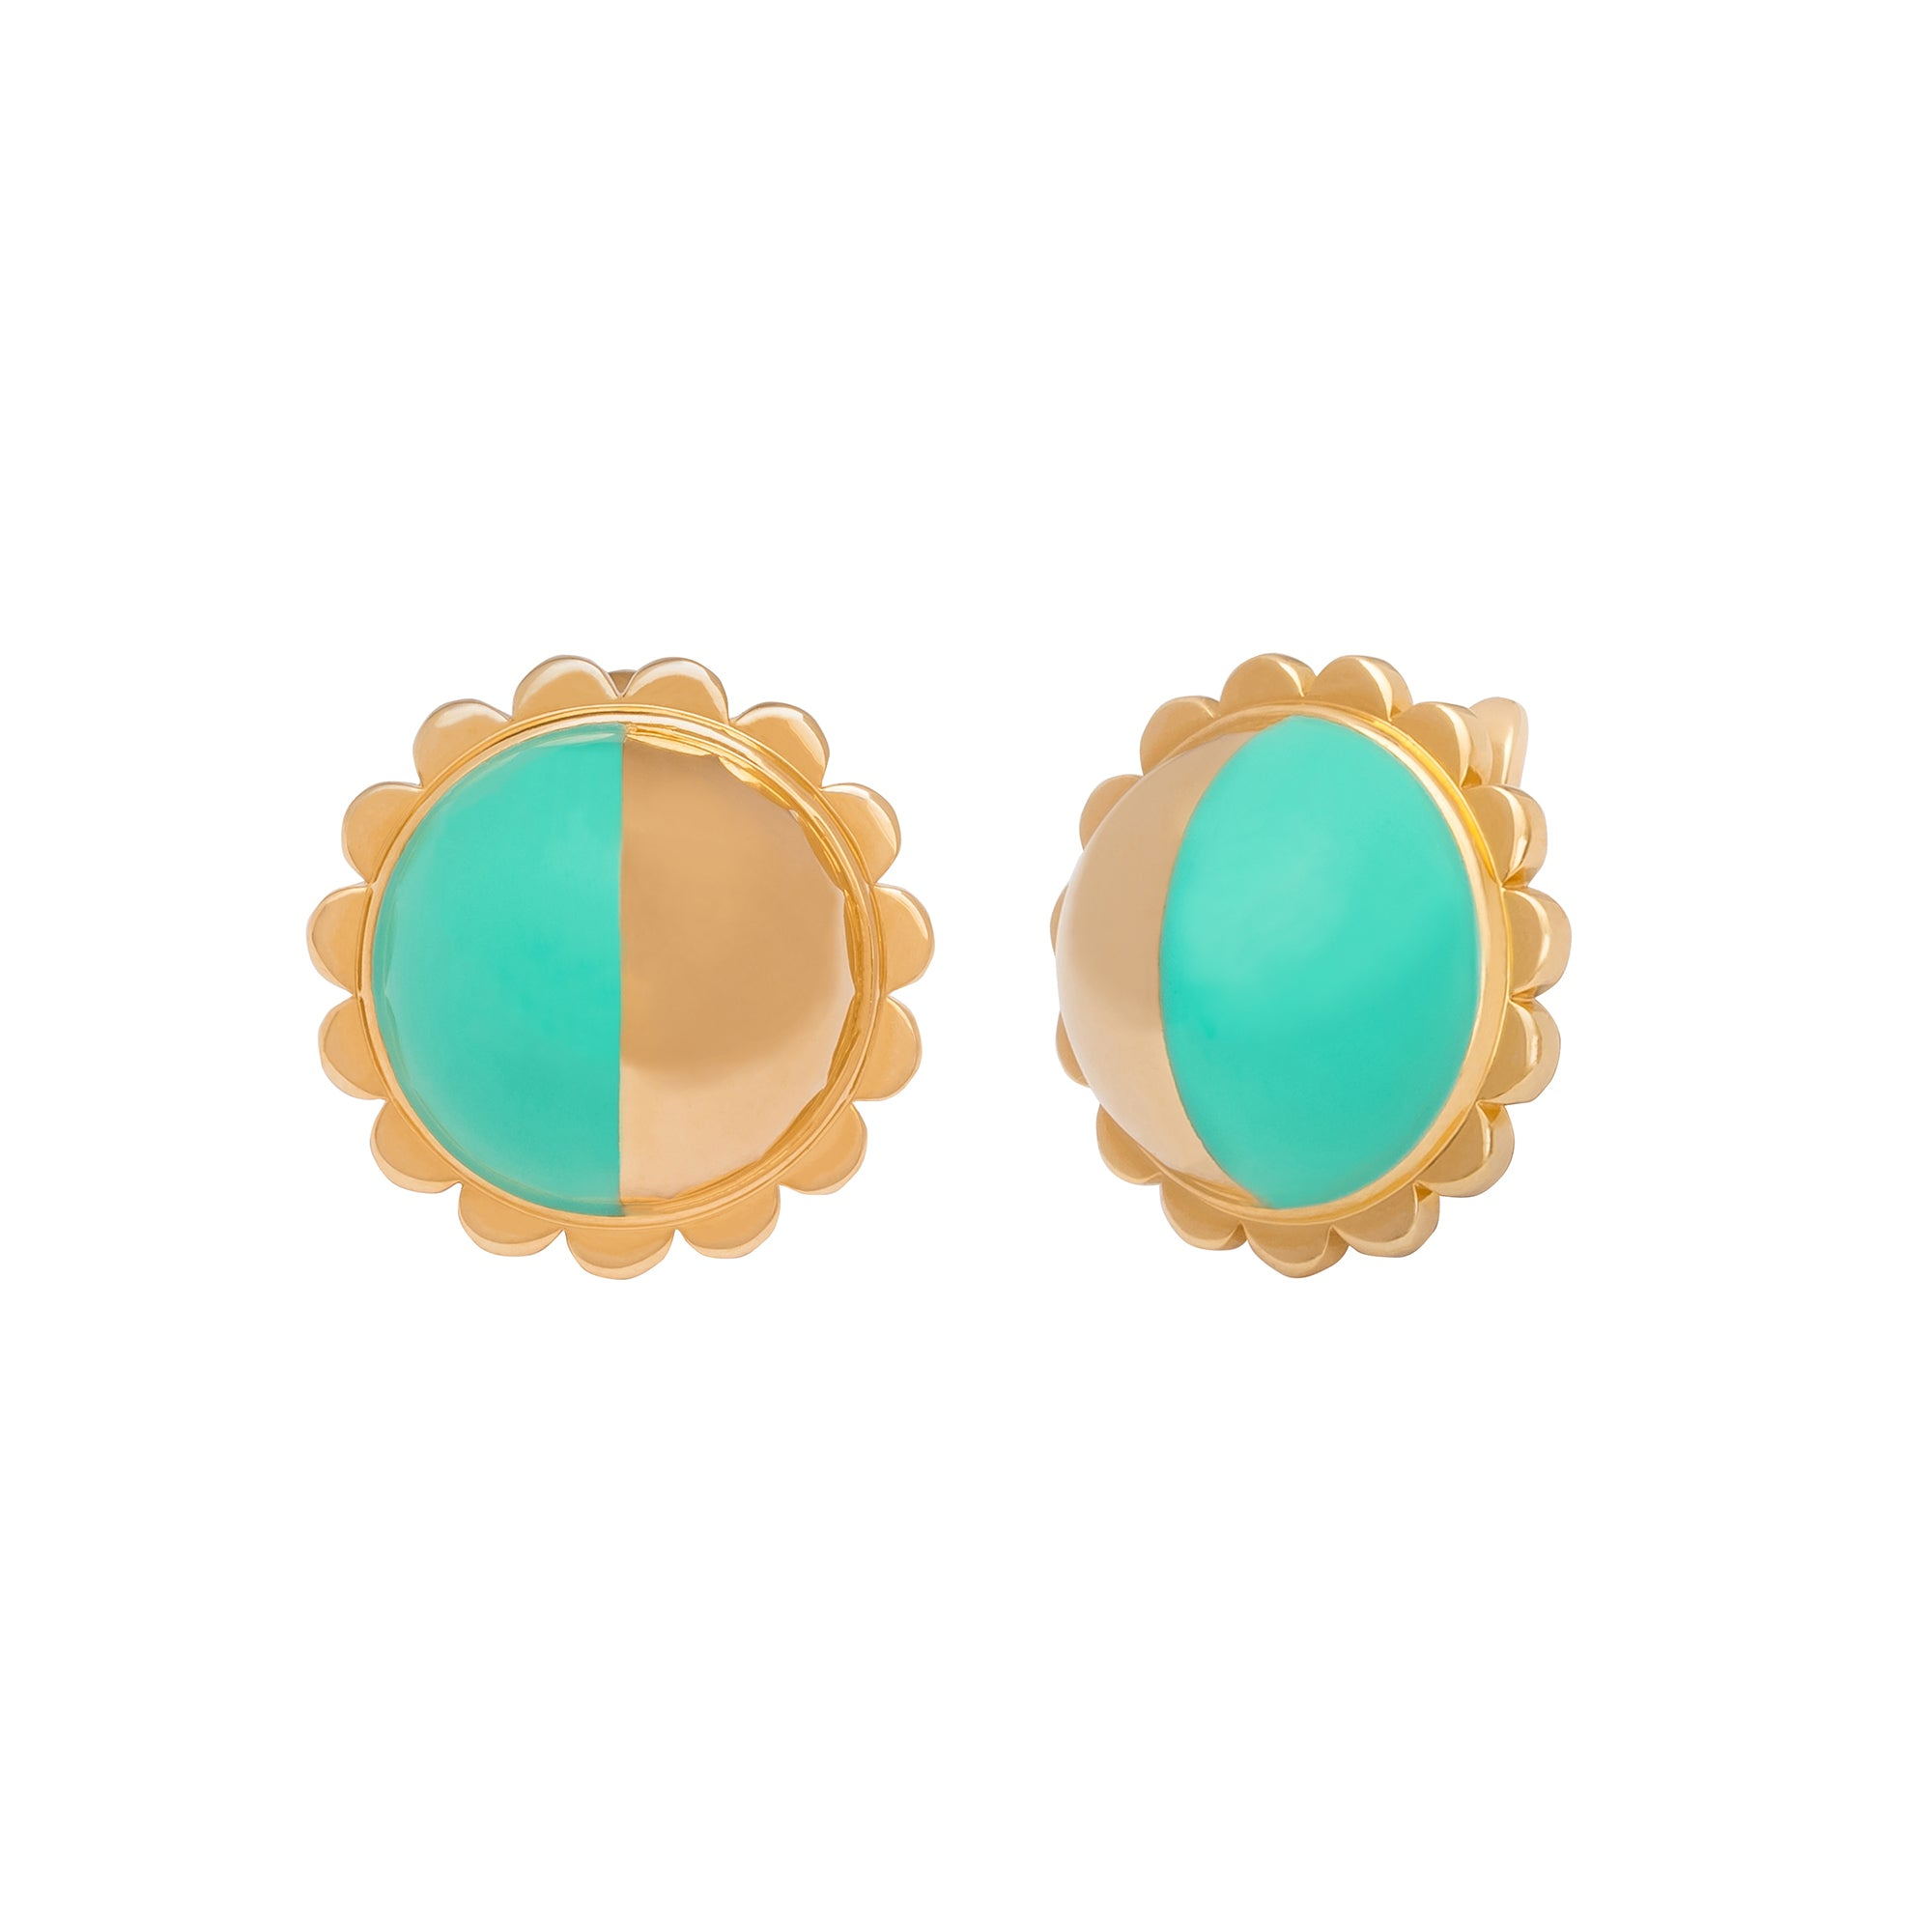 Gold & Mint Enamel Earrings - Suel - Earrings | Broken English Jewelry